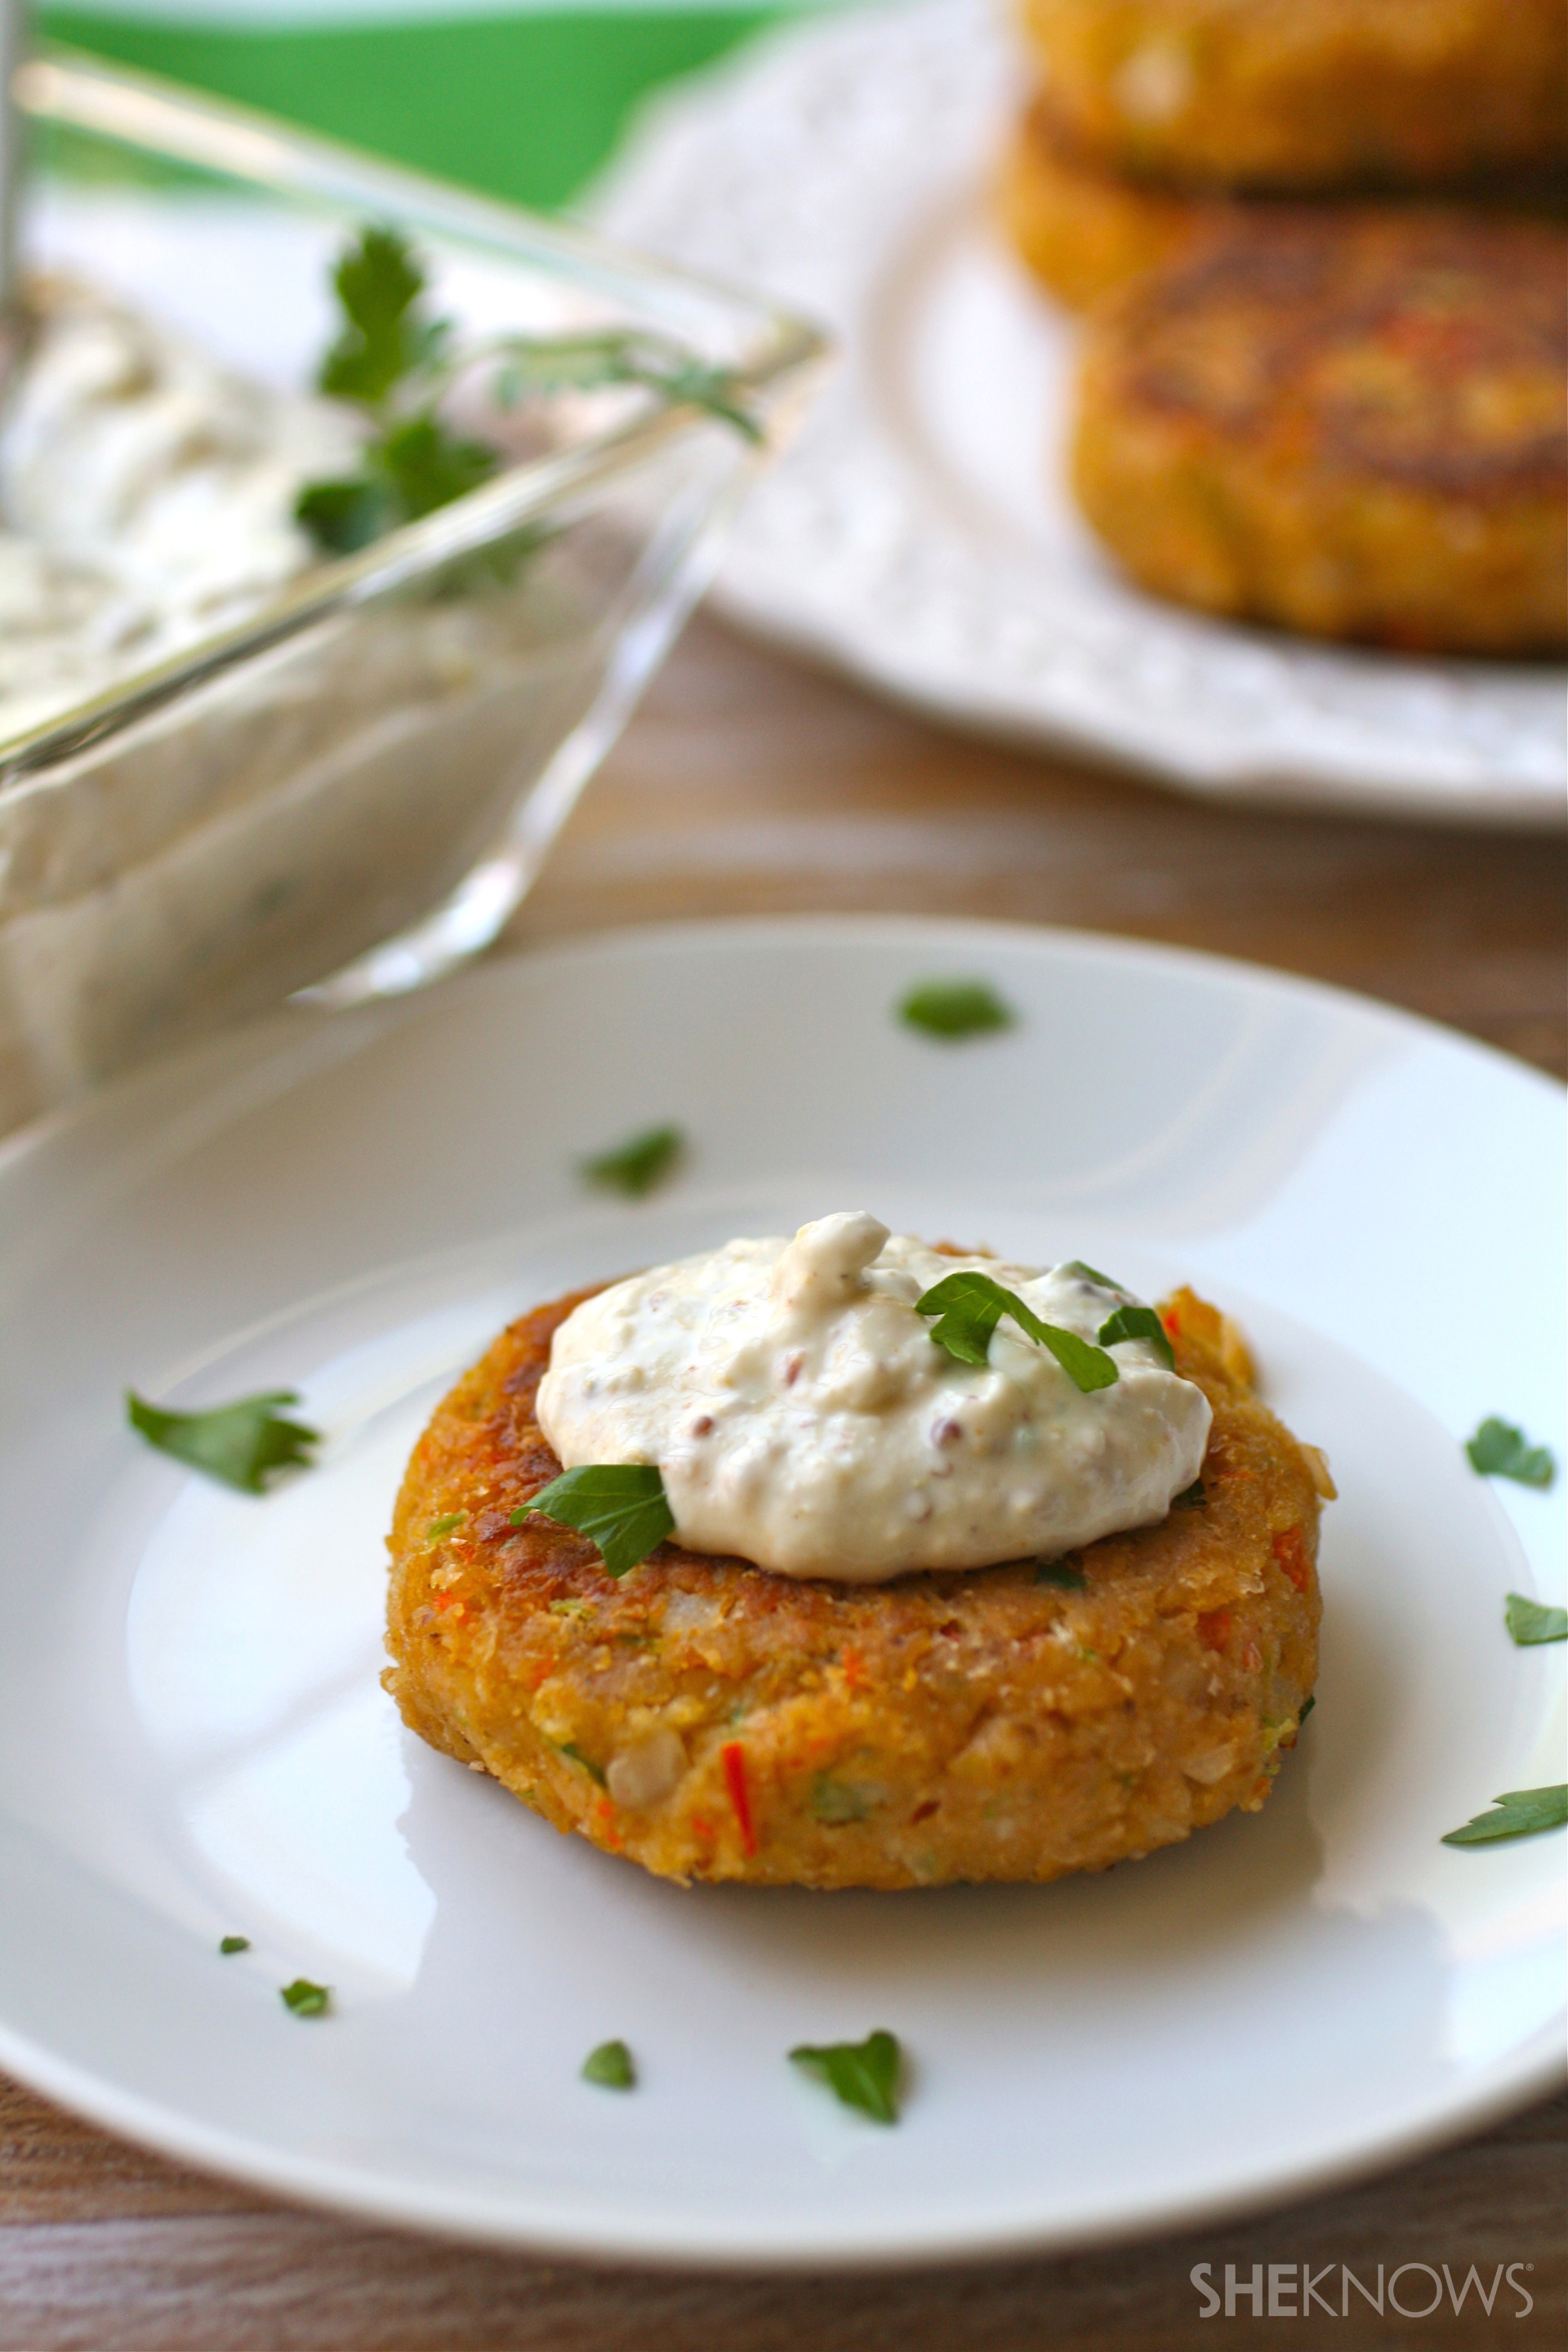 Give your crabcakes a Meatless Monday makeover